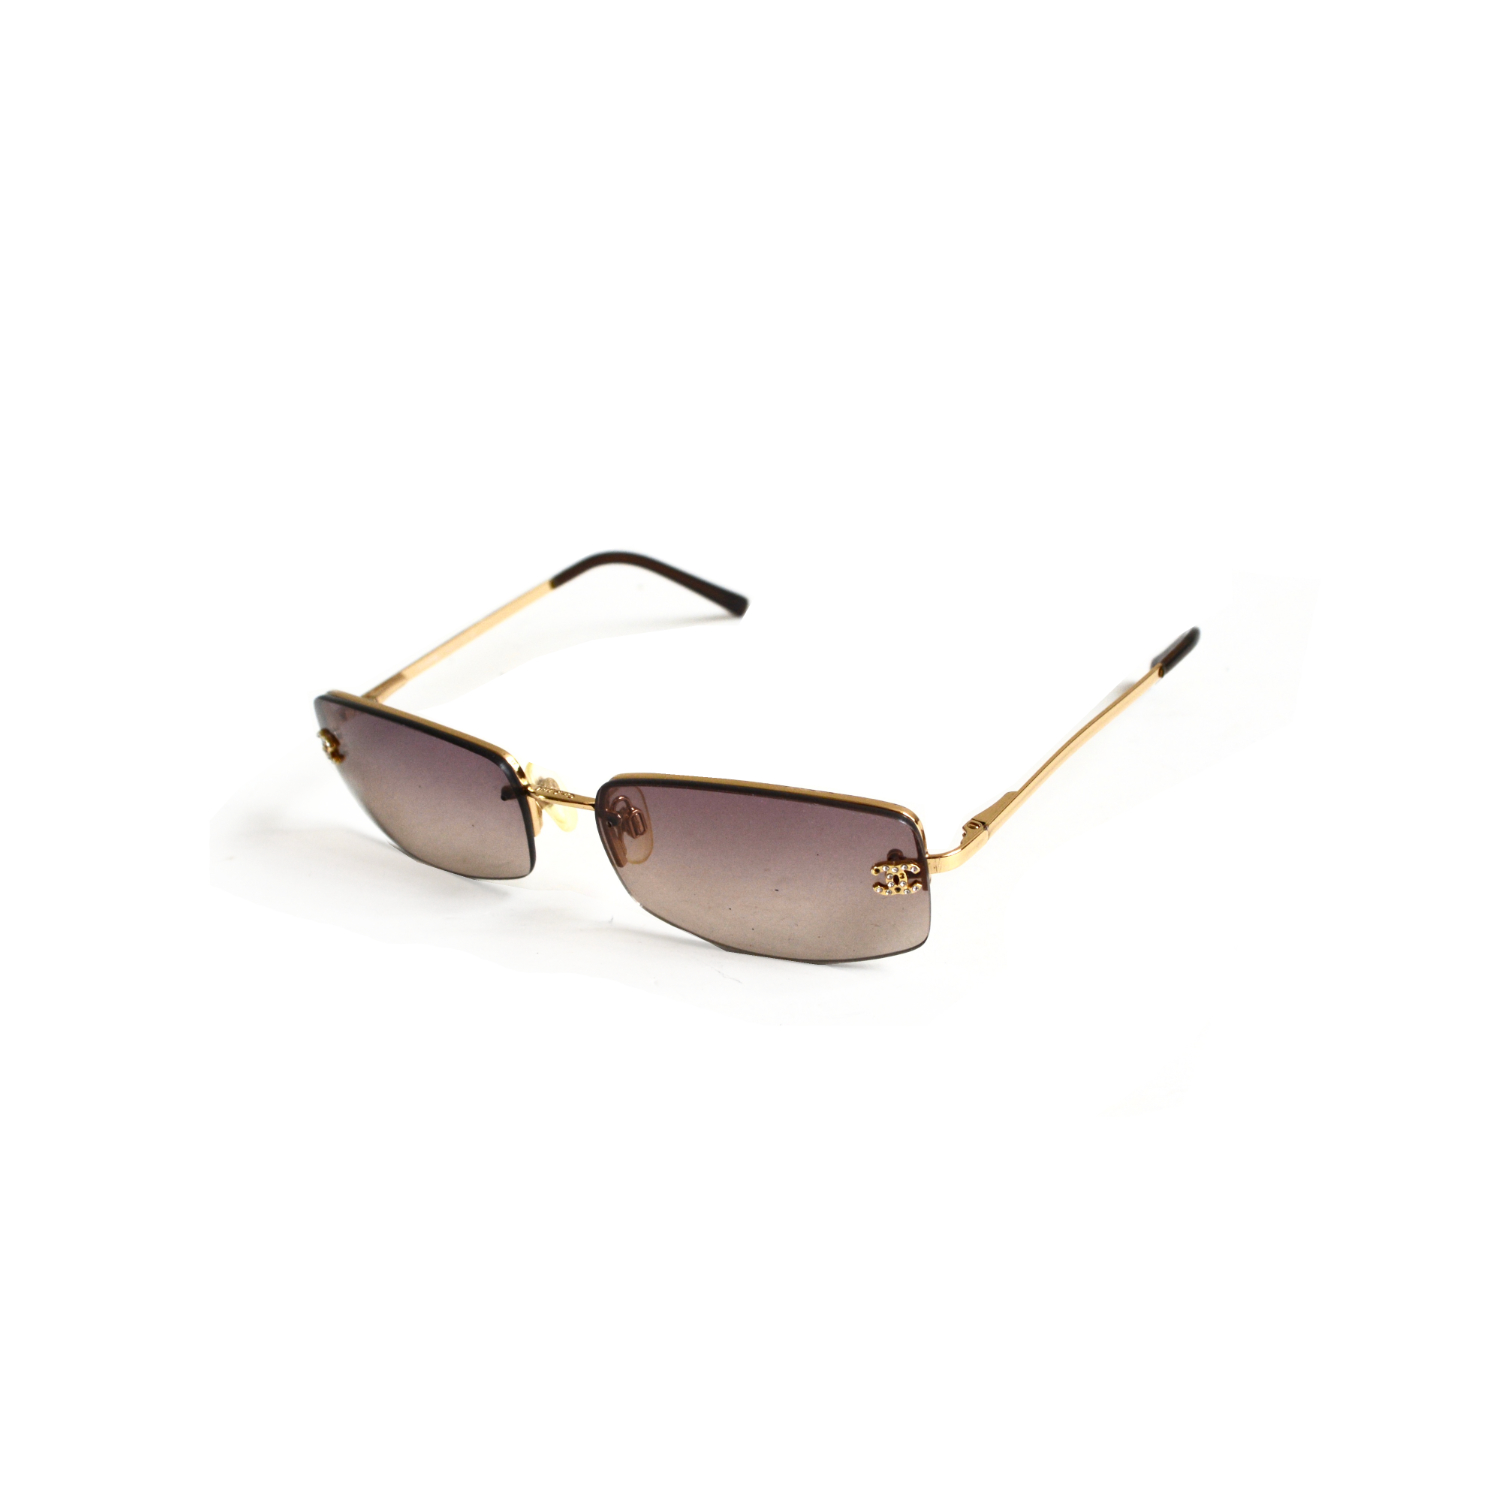 Chanel Rimless Tinted Diamante Gold Sunglasses in Brown | NITRYL